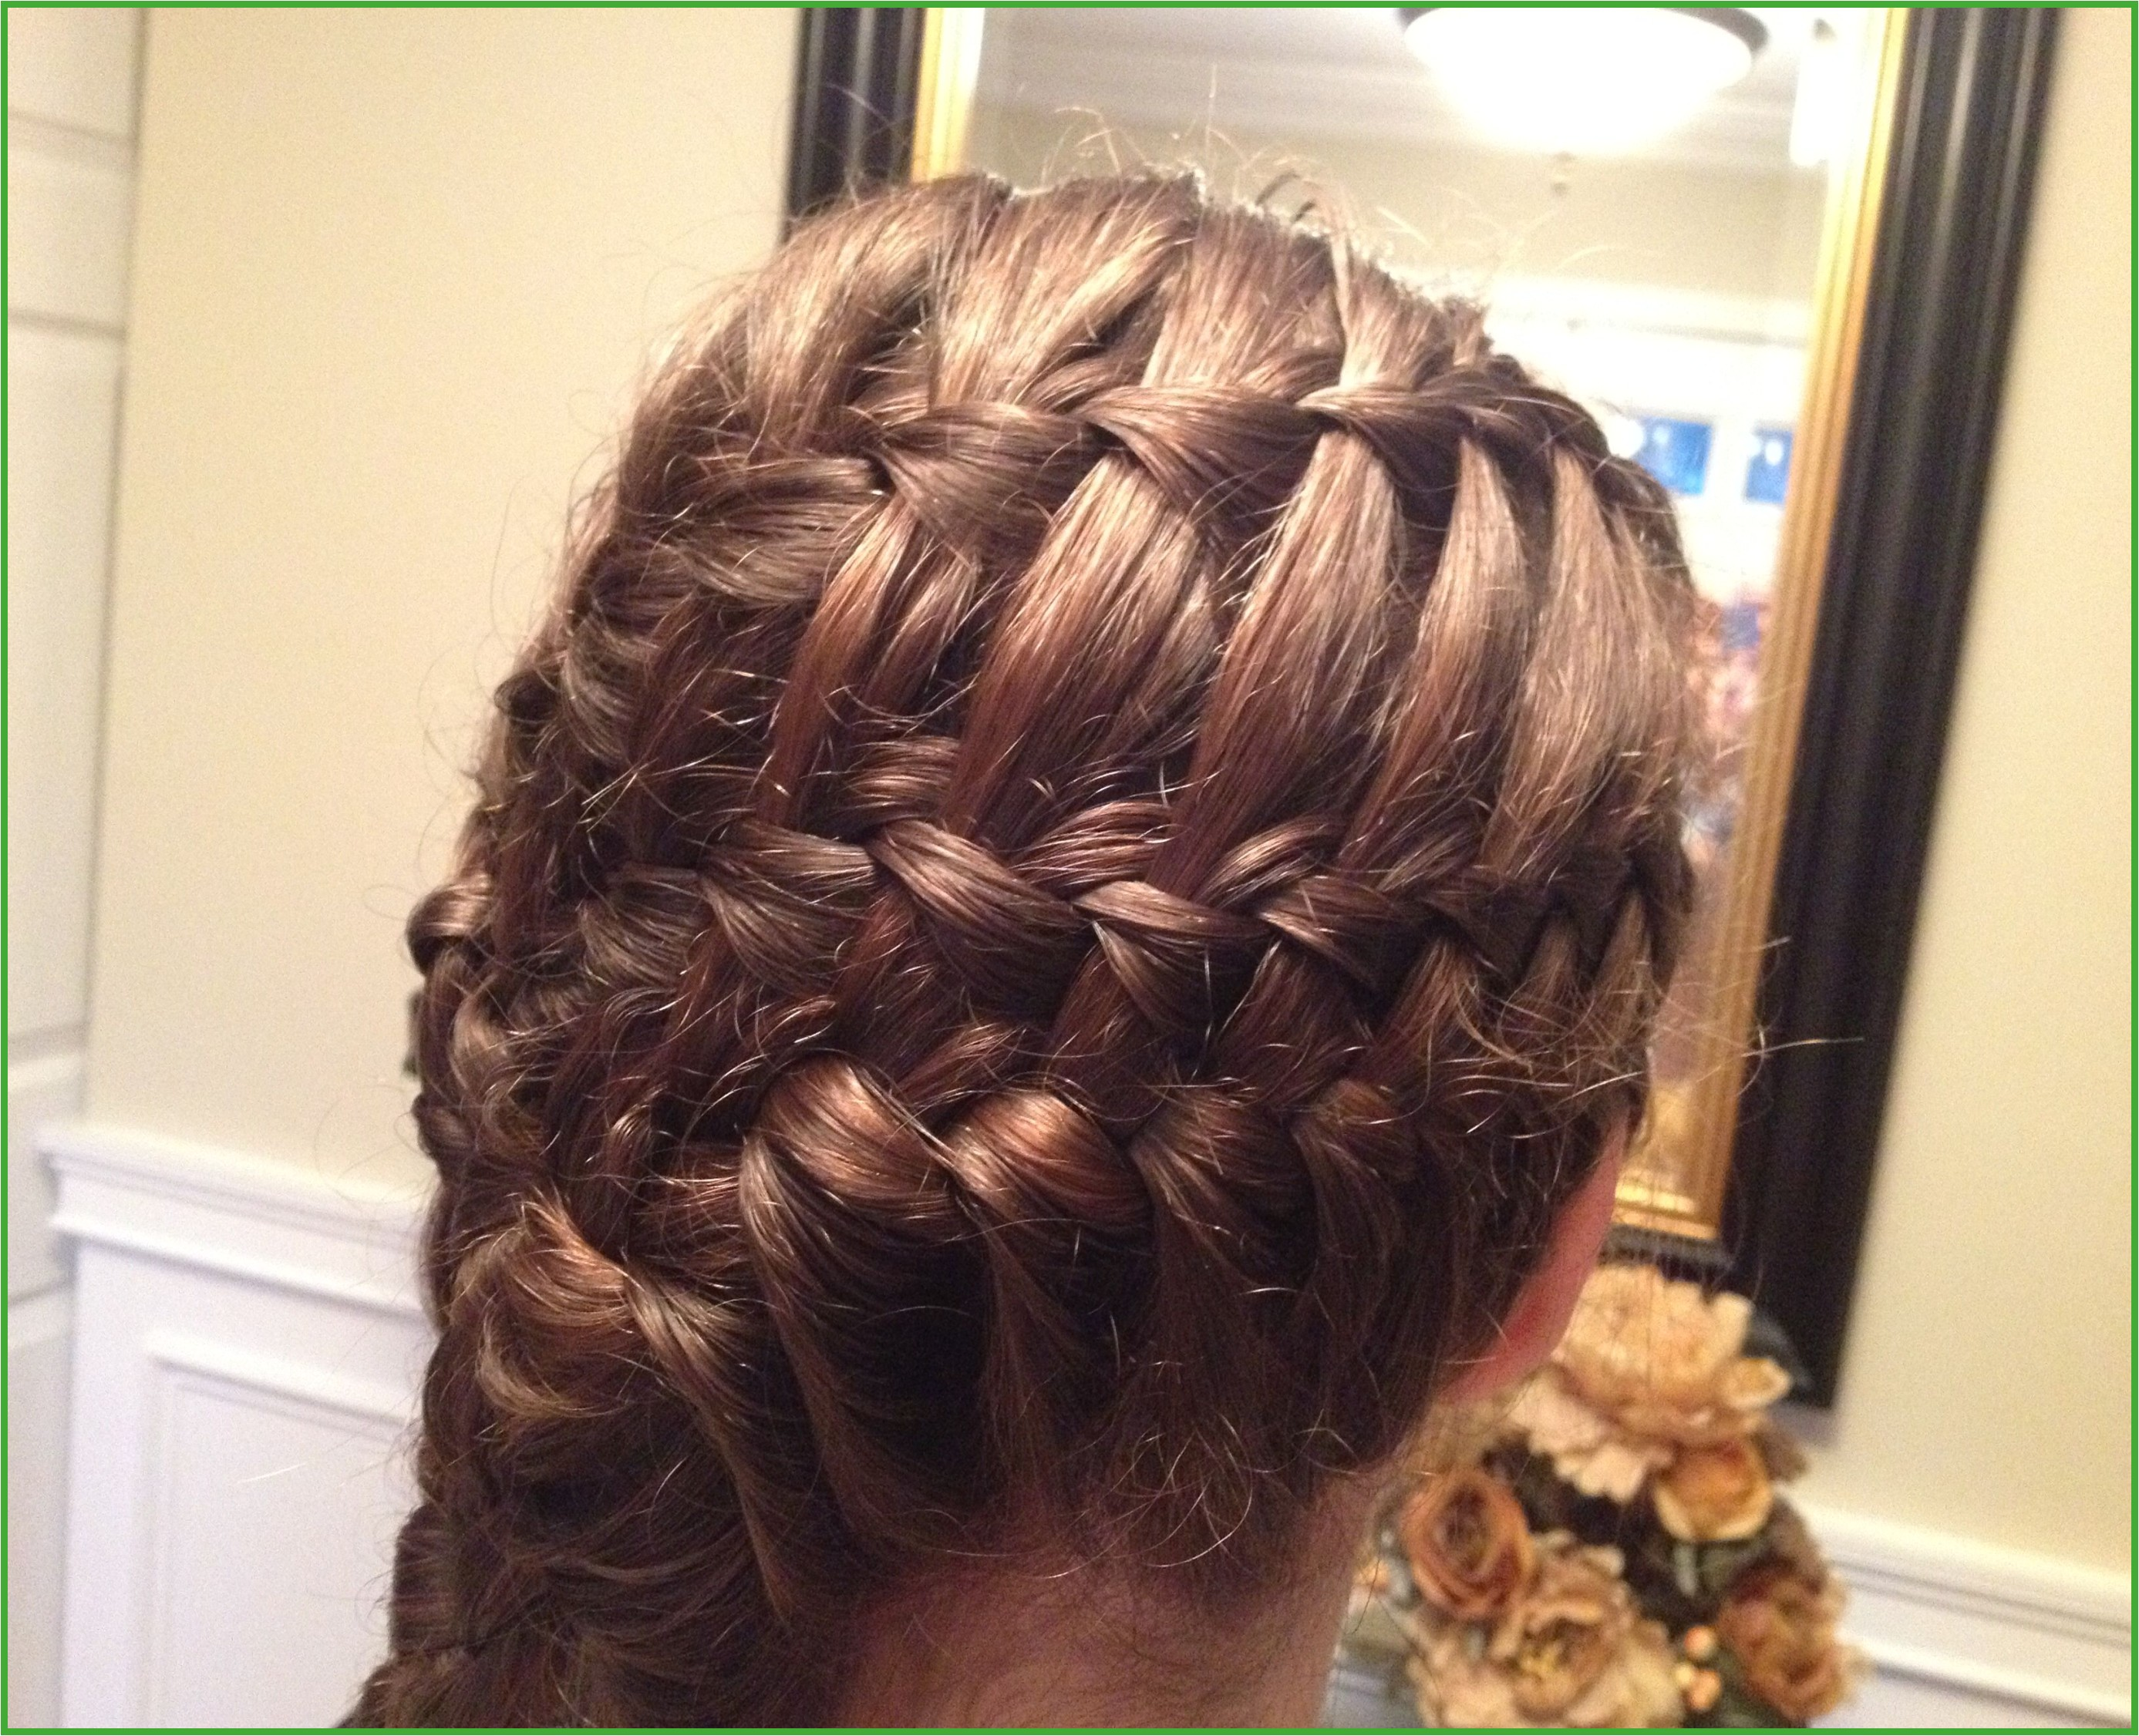 Two waterfall braids and a normal French braid at the bottom going into a five strand